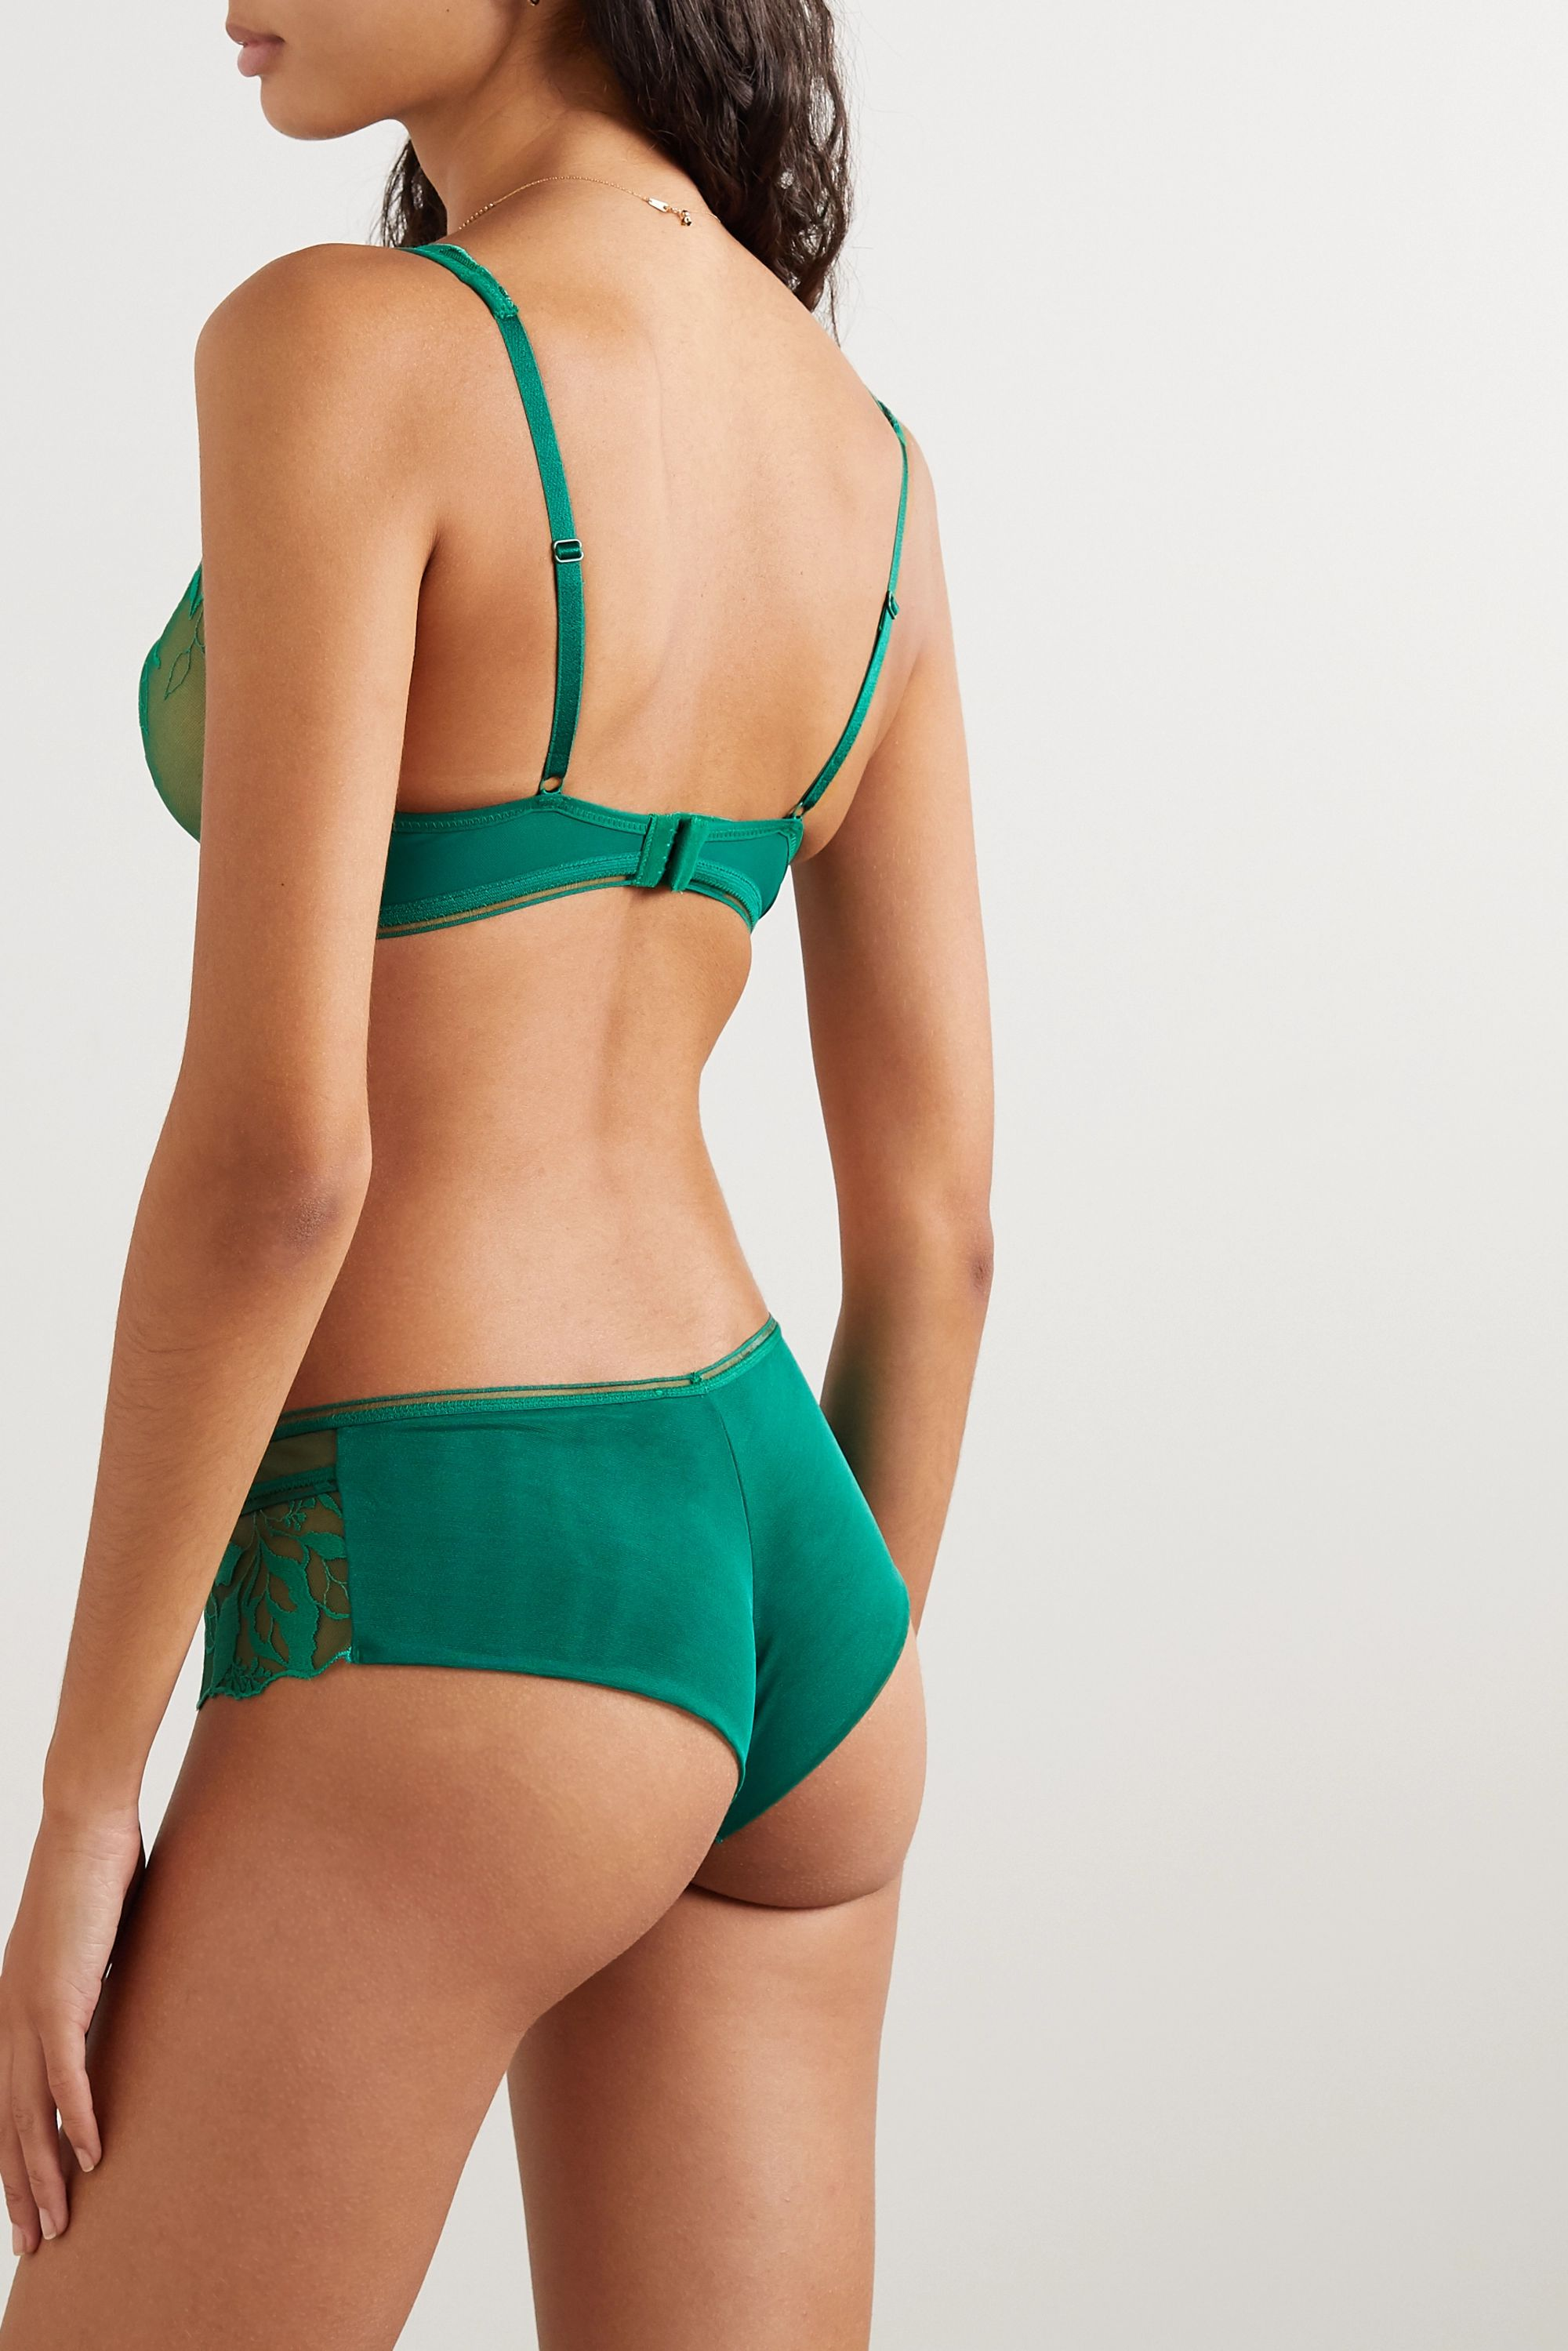 Maison Lejaby Sin embroidered stretch-tulle and jersey briefs